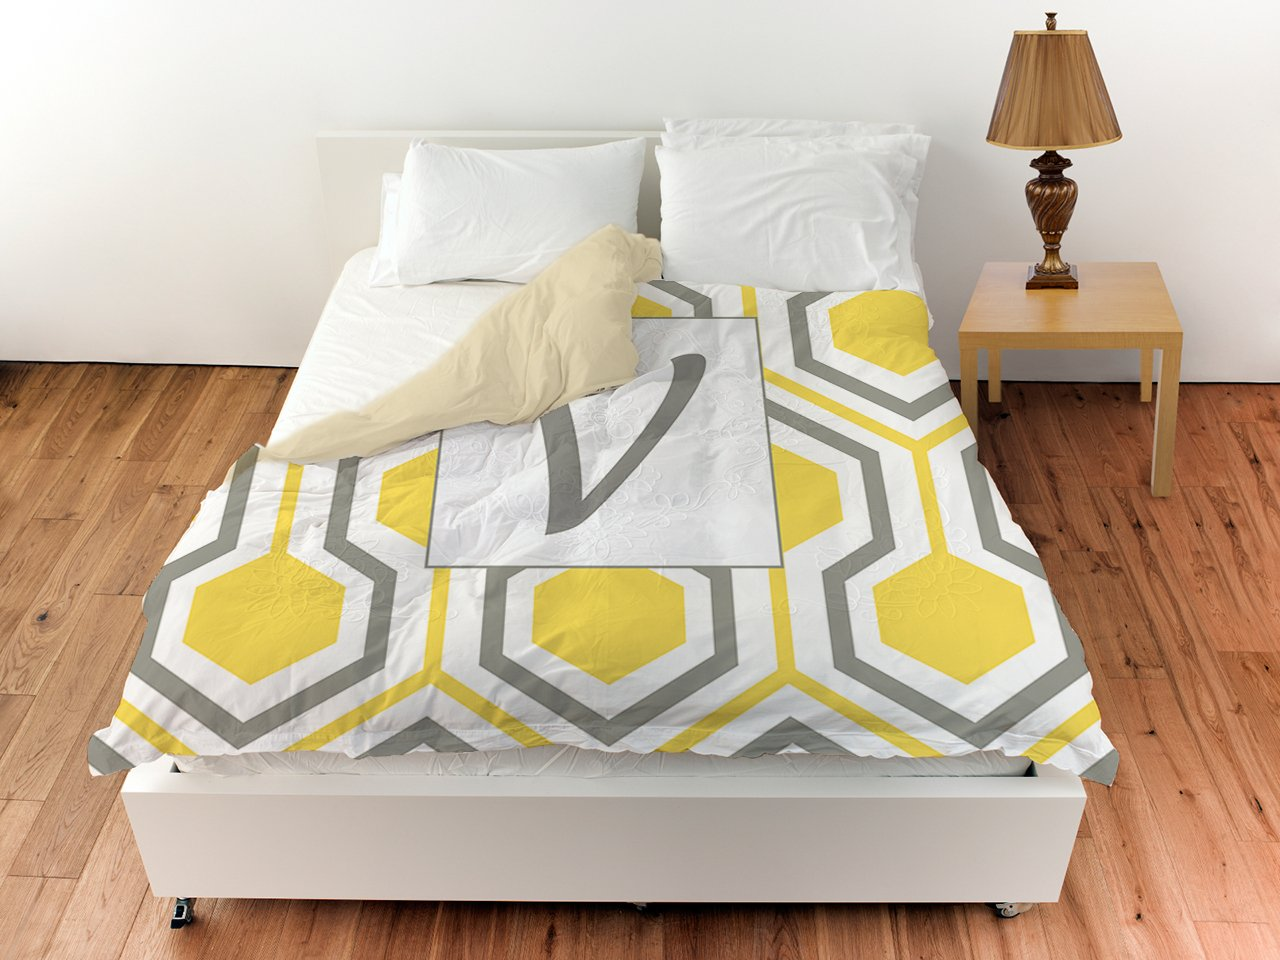 Manual Woodworkers & Weavers Duvet Cover, Twin, Monogrammed Letter V, Yellow Honeycomb